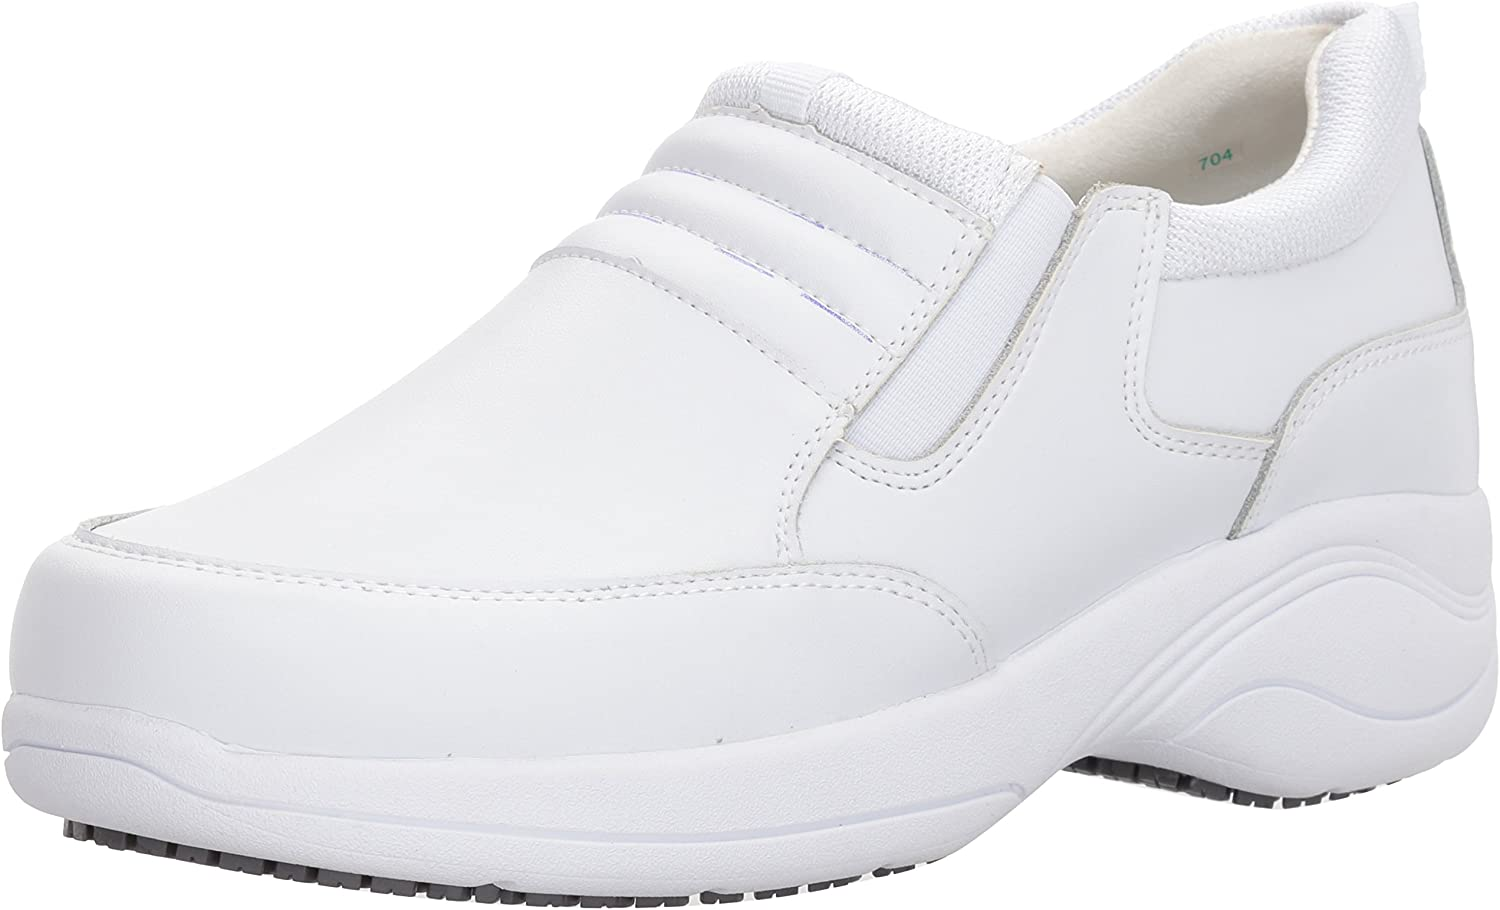 Easy Works Women's Magna Health Care Professional shoes